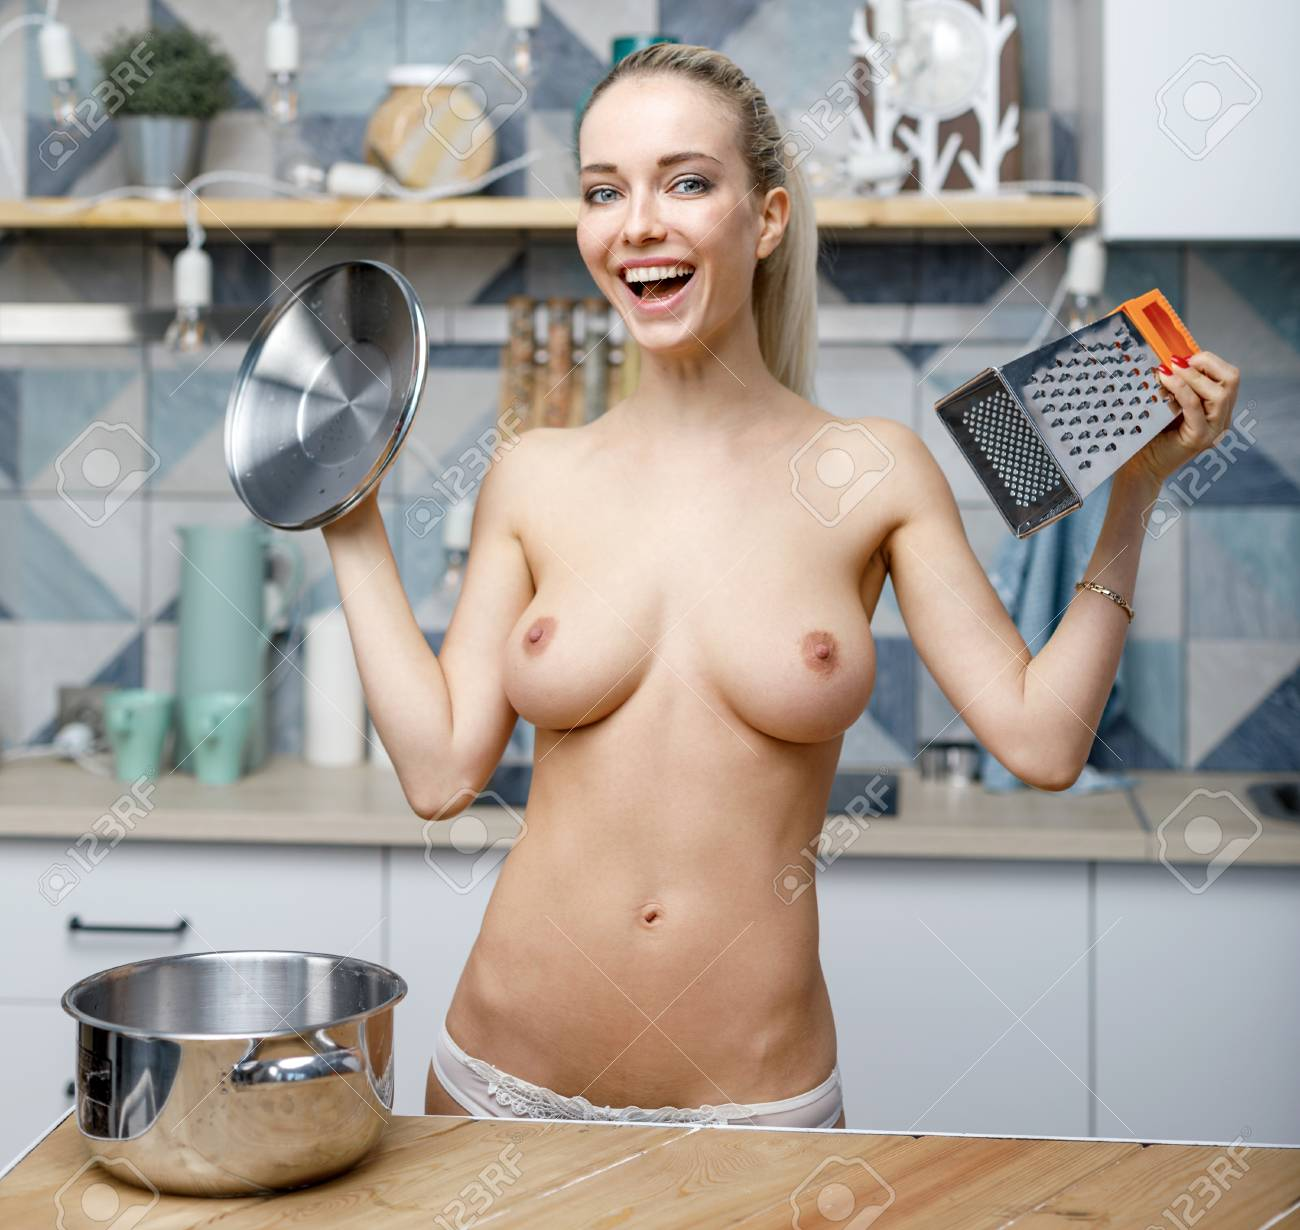 Happy Nude Woman In The Kitchen